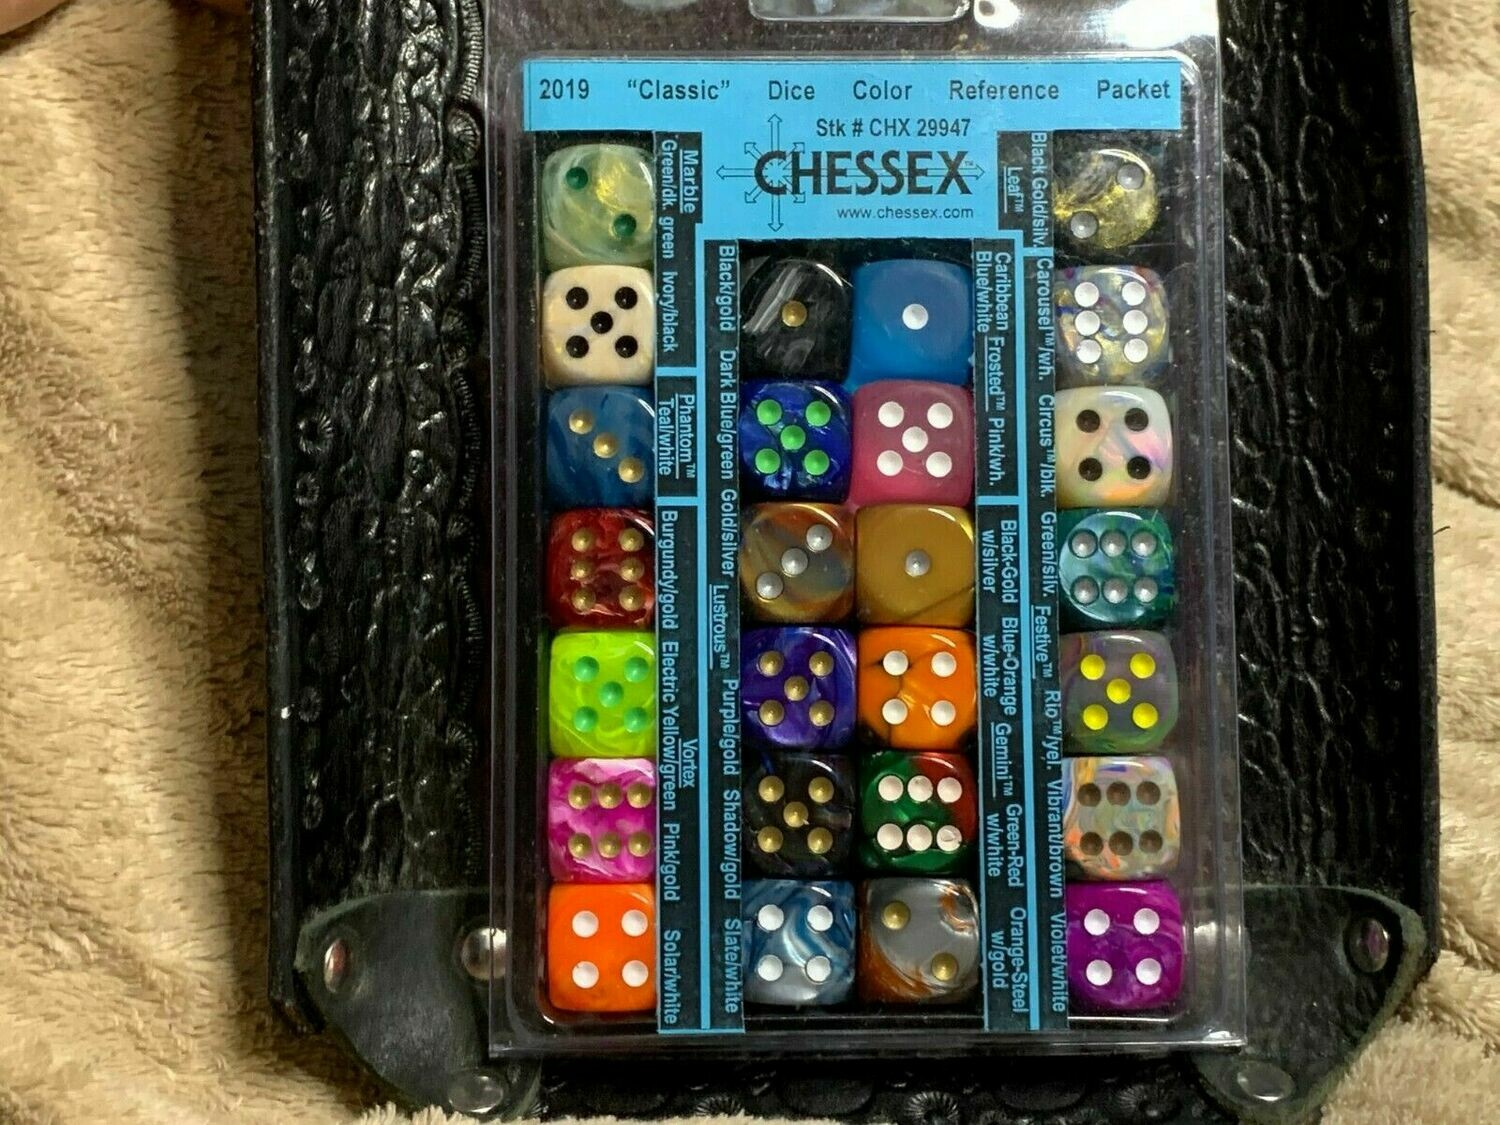 Chessex Dice Reference Pack Packet Catalog - Classic 2019 Tabletop RPG Gaming